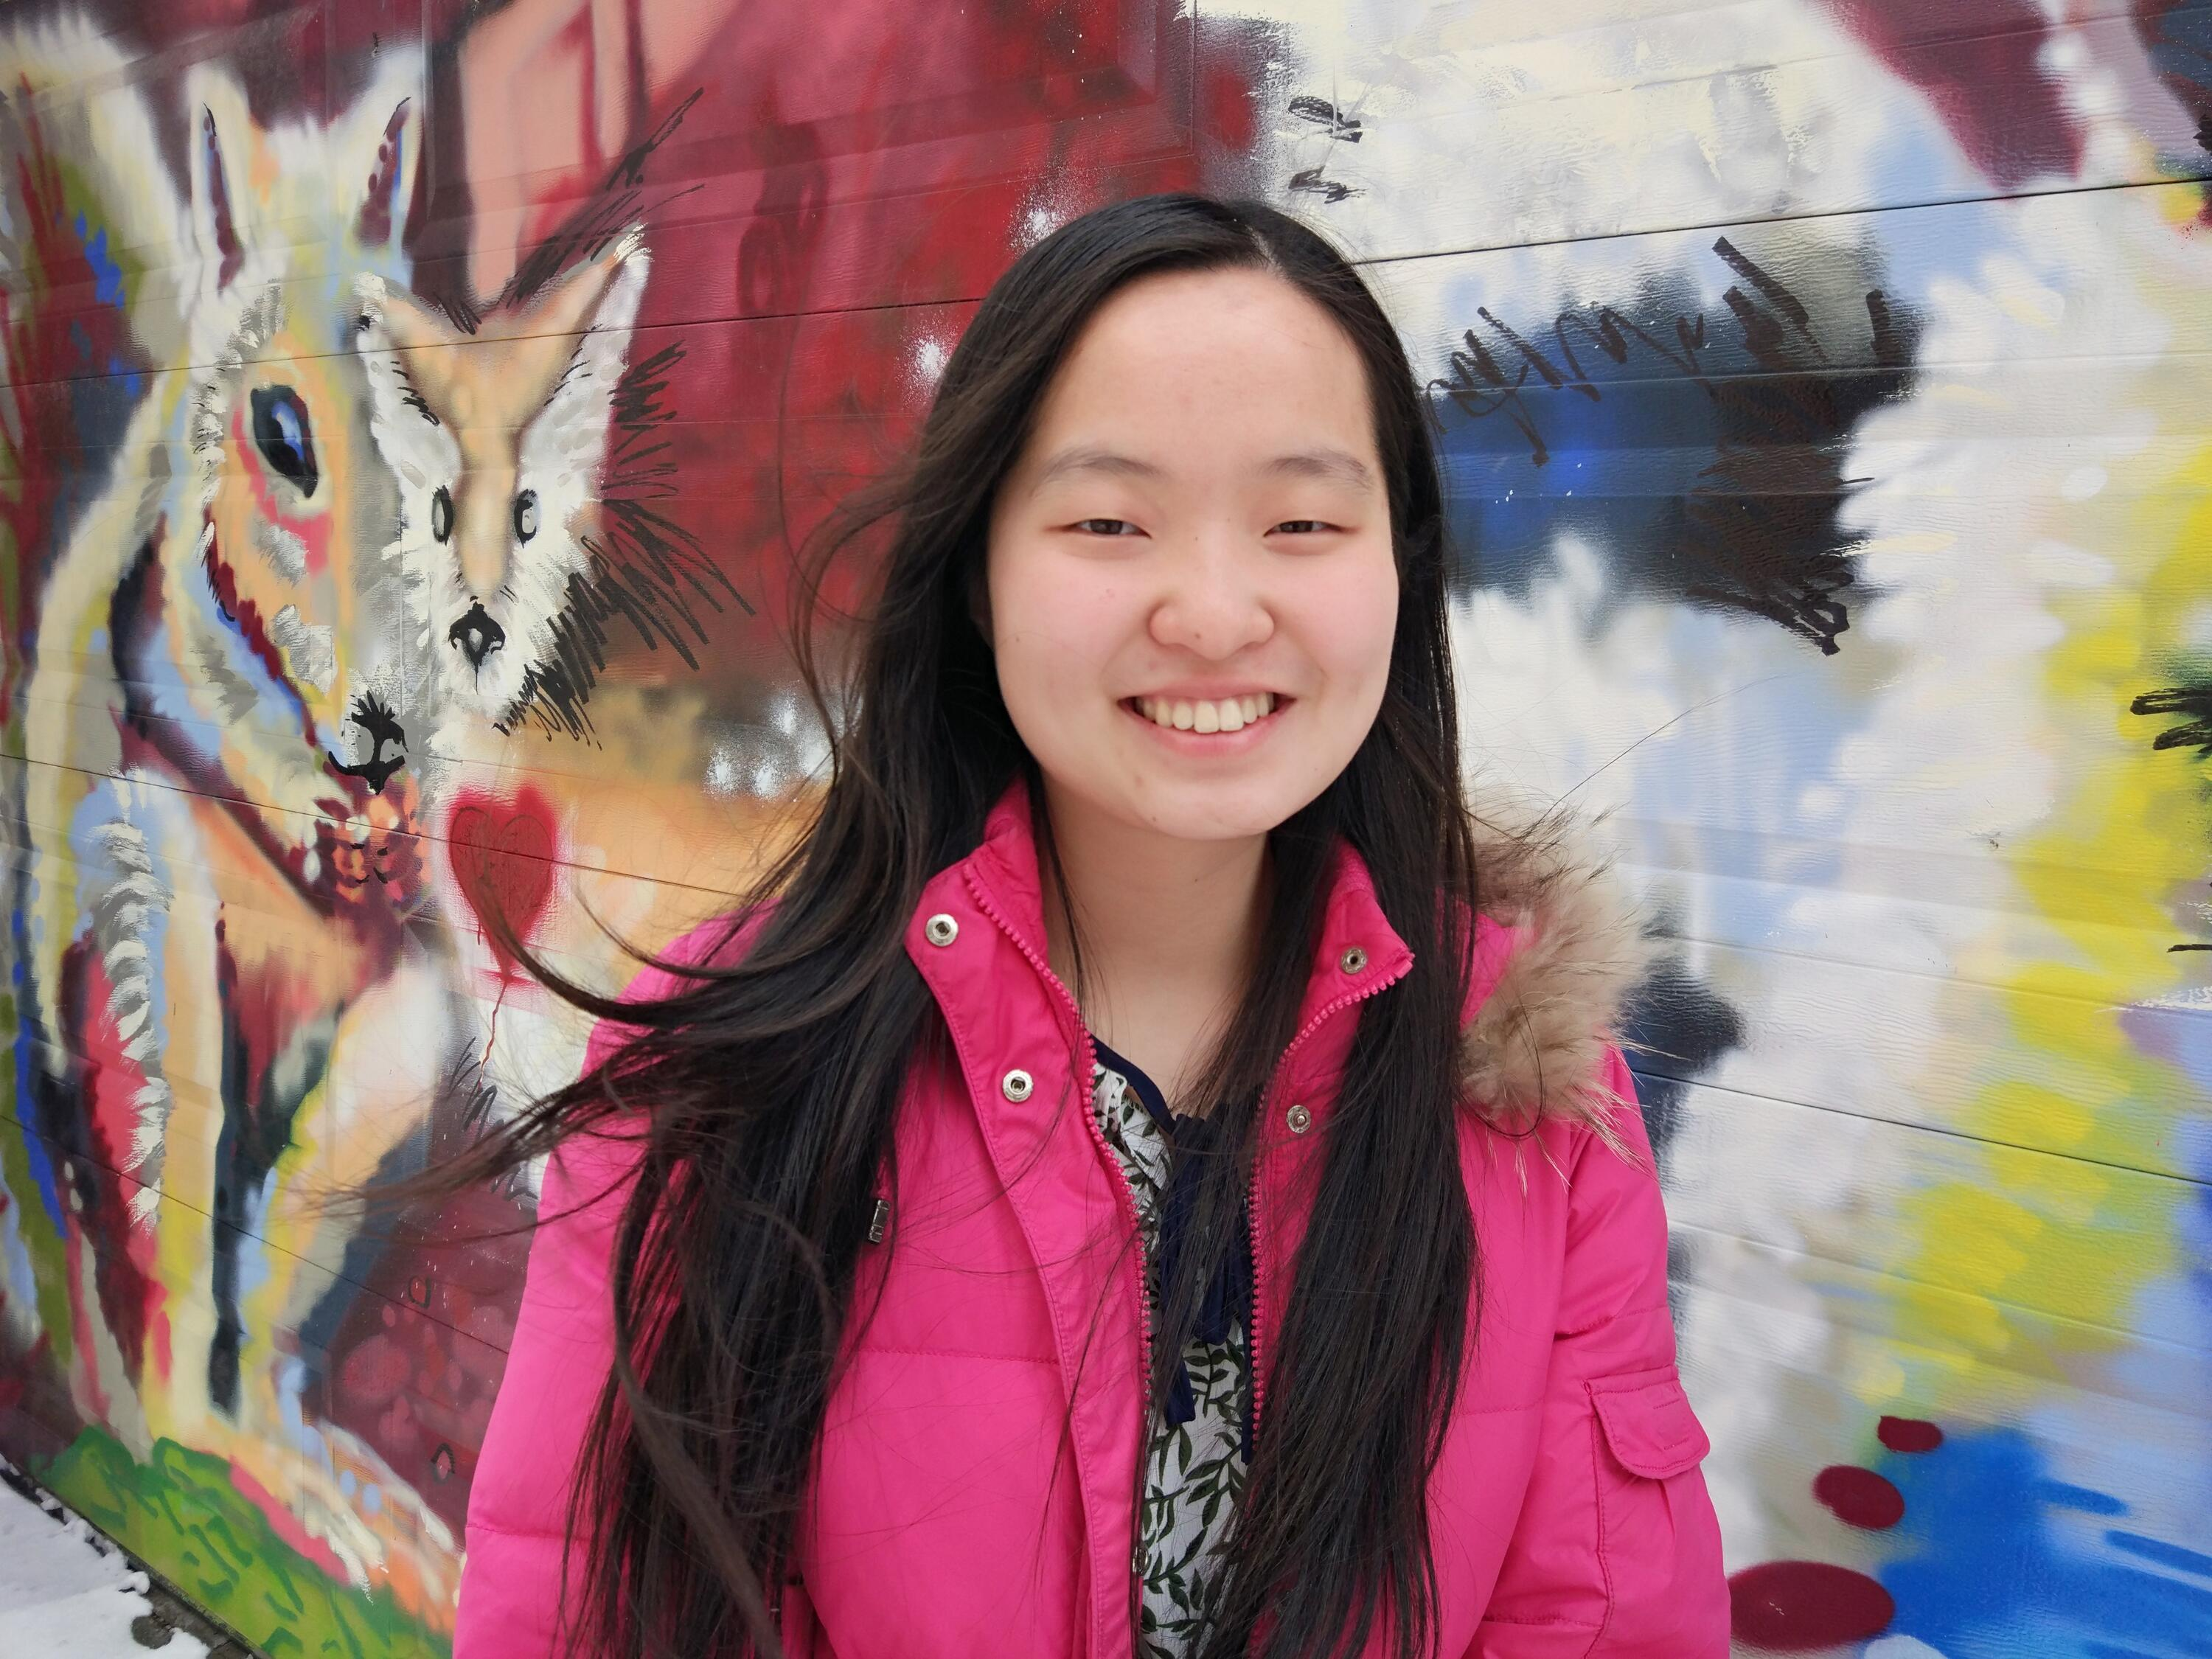 Maggie Chang standing in front of wall mural